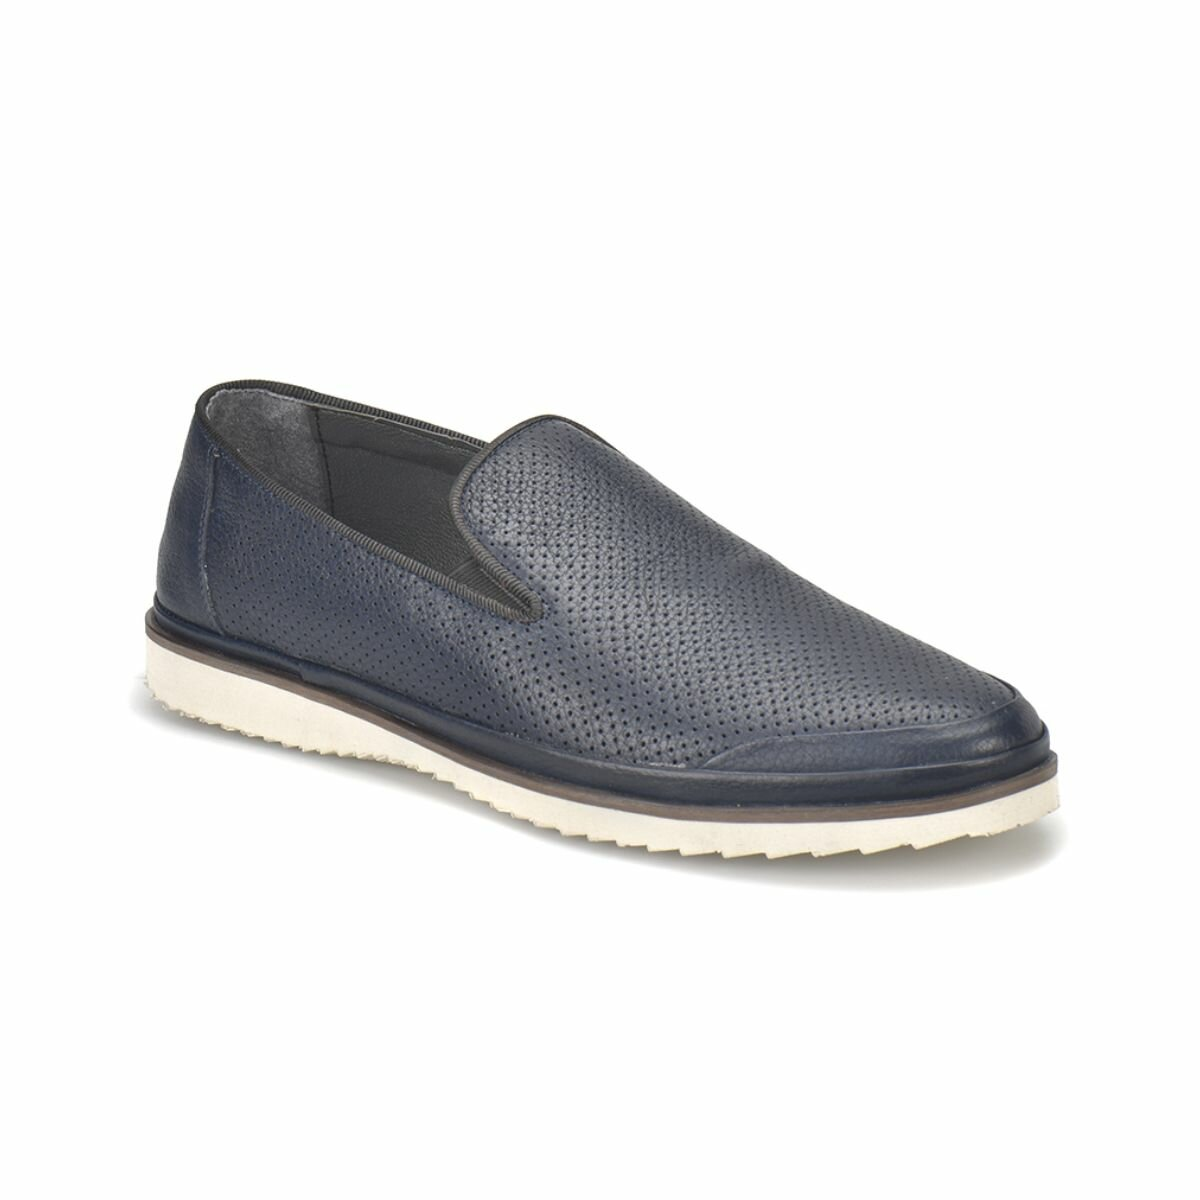 FLO 1792 M 6688 Navy Blue Men 'S Modern Shoes Flogart